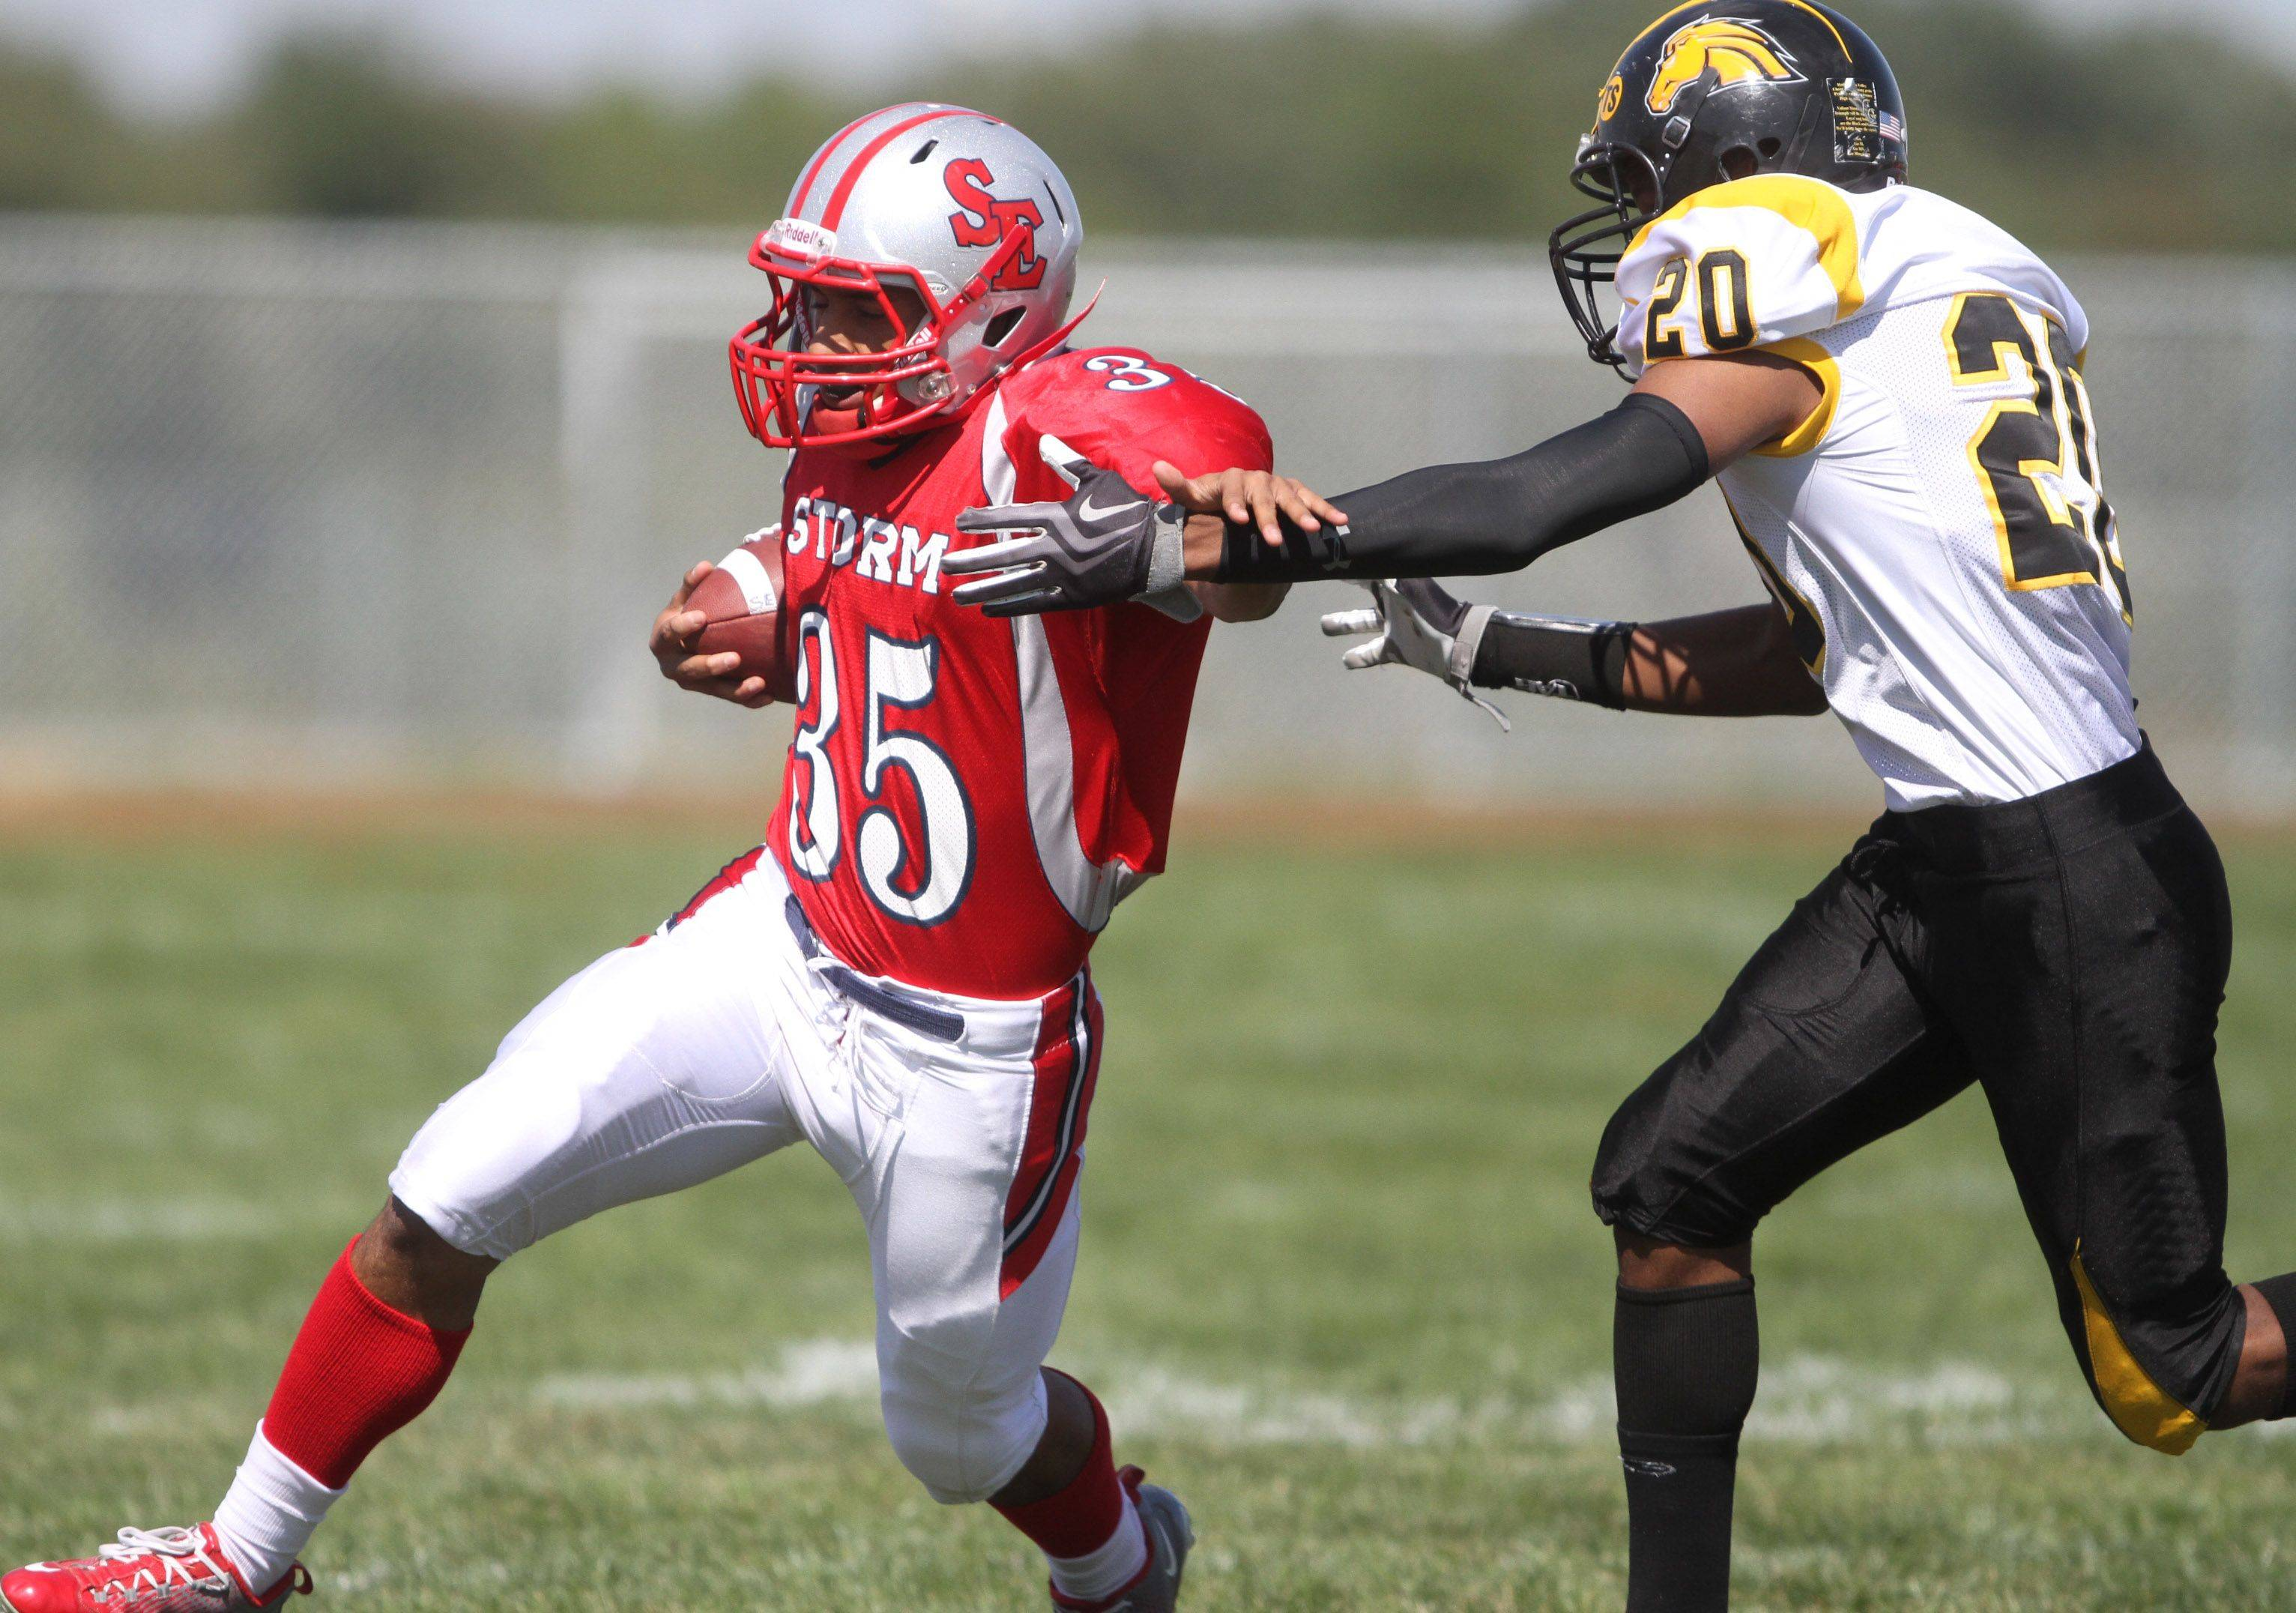 South Elgin's Adolfo Pacheco brushes off Metea Valley defender Breon Hoosier at South Elgin on Saturday, September 17th.